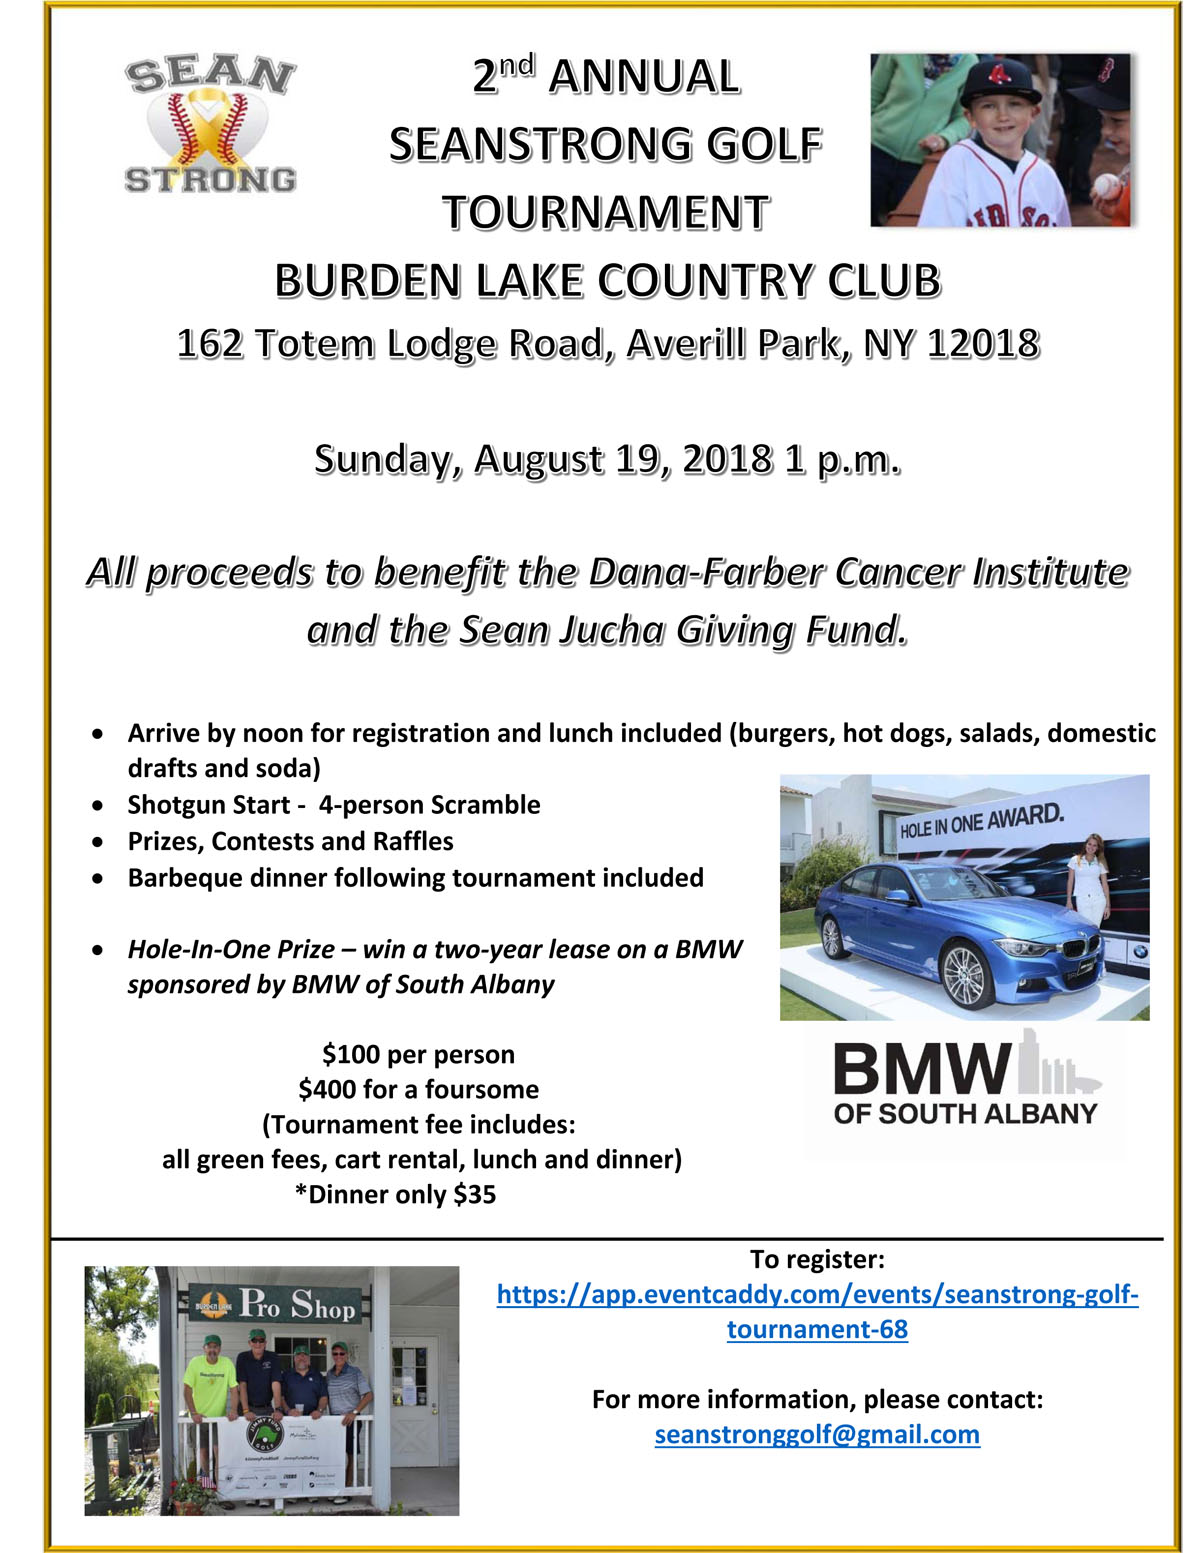 SeanStrong Golf Tournament flier